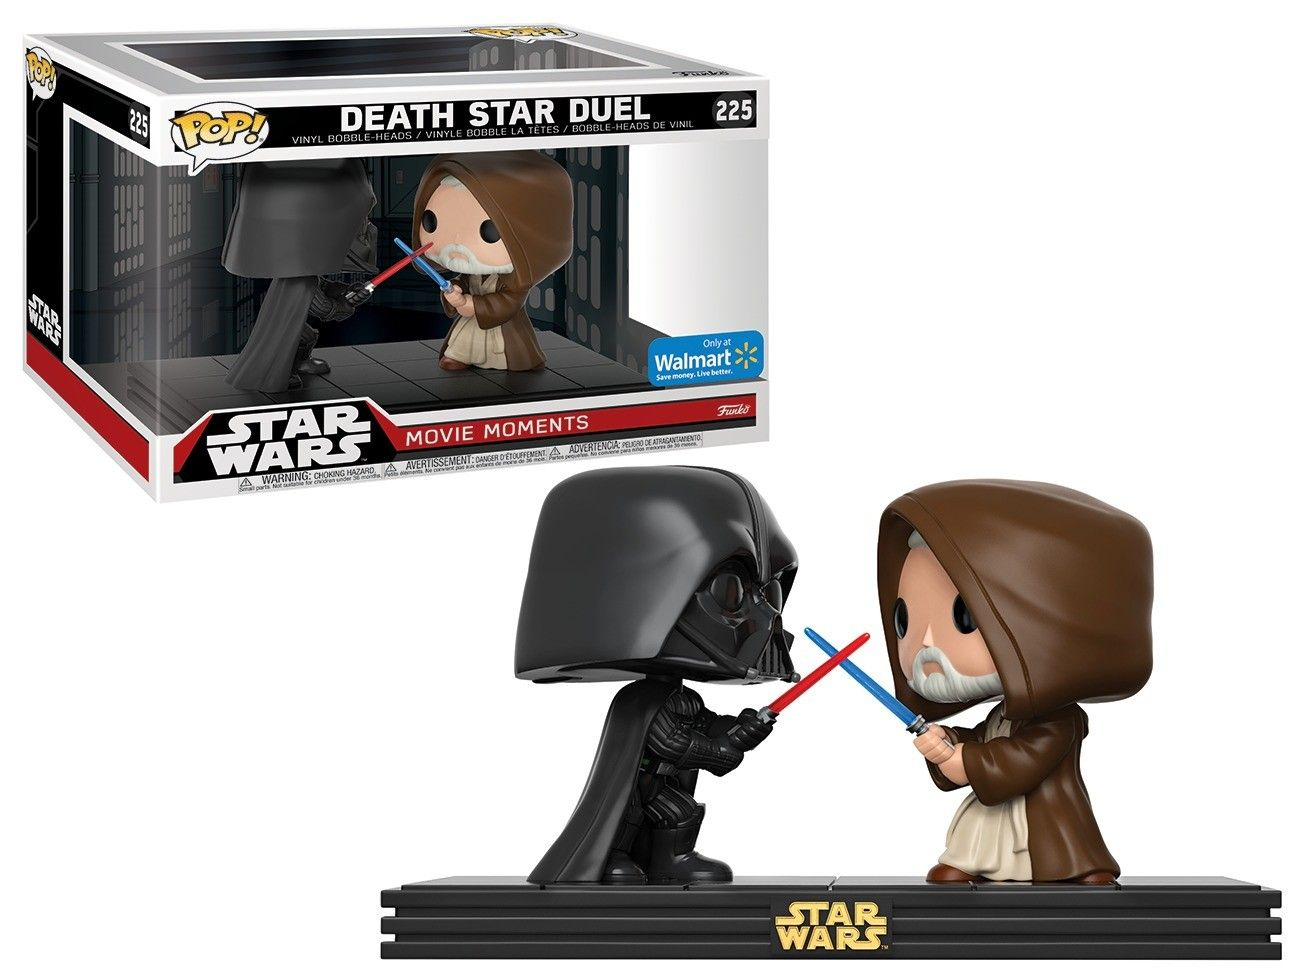 Pop! Death Star Duel (Darth Vader/Obi Wan Kenobi): Star Wars (Movie Moments) Exclusivo #225 - Funko (Apenas Venda Online)